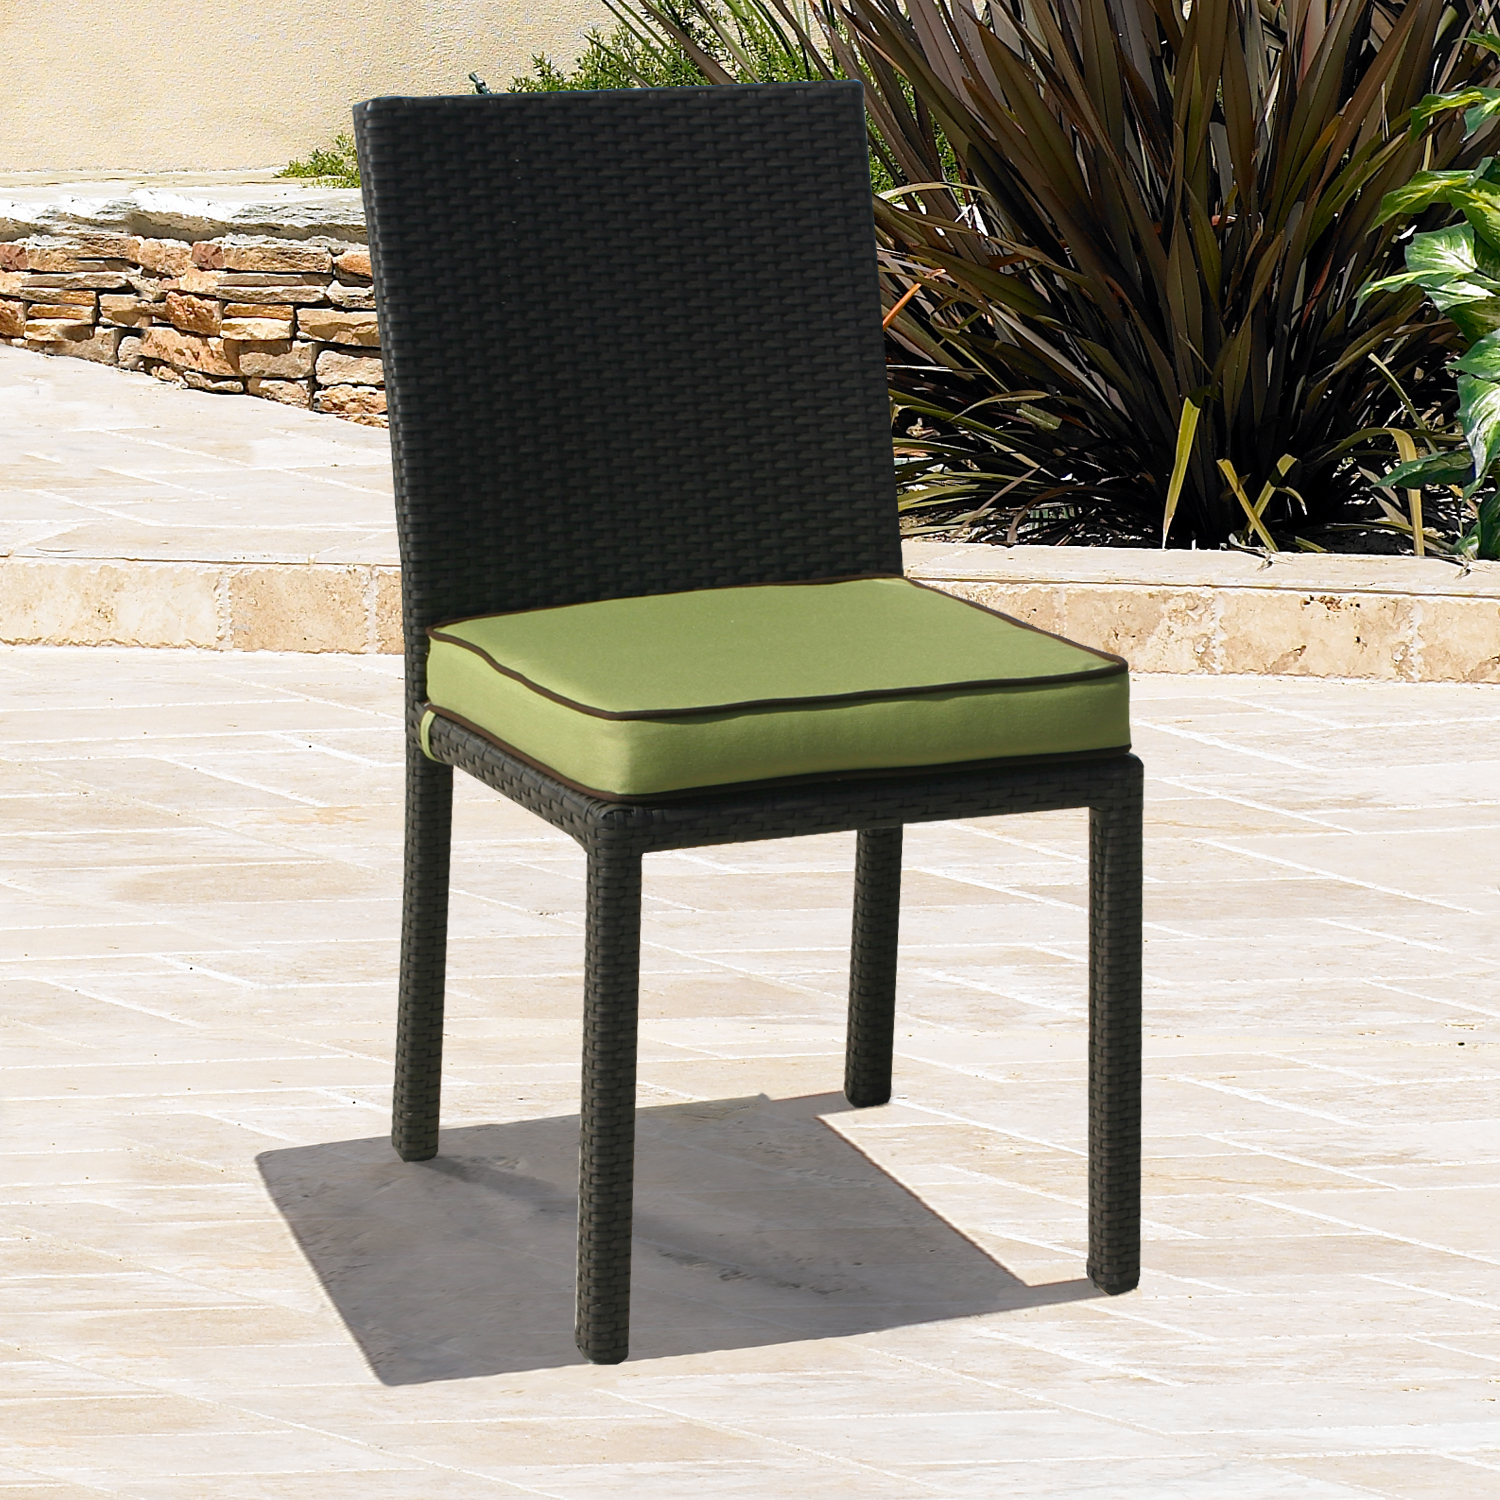 VENICE SIDE CHAIR RC894 GRADE A $170.00 GRADE B $180.00 GRADE C $190.00